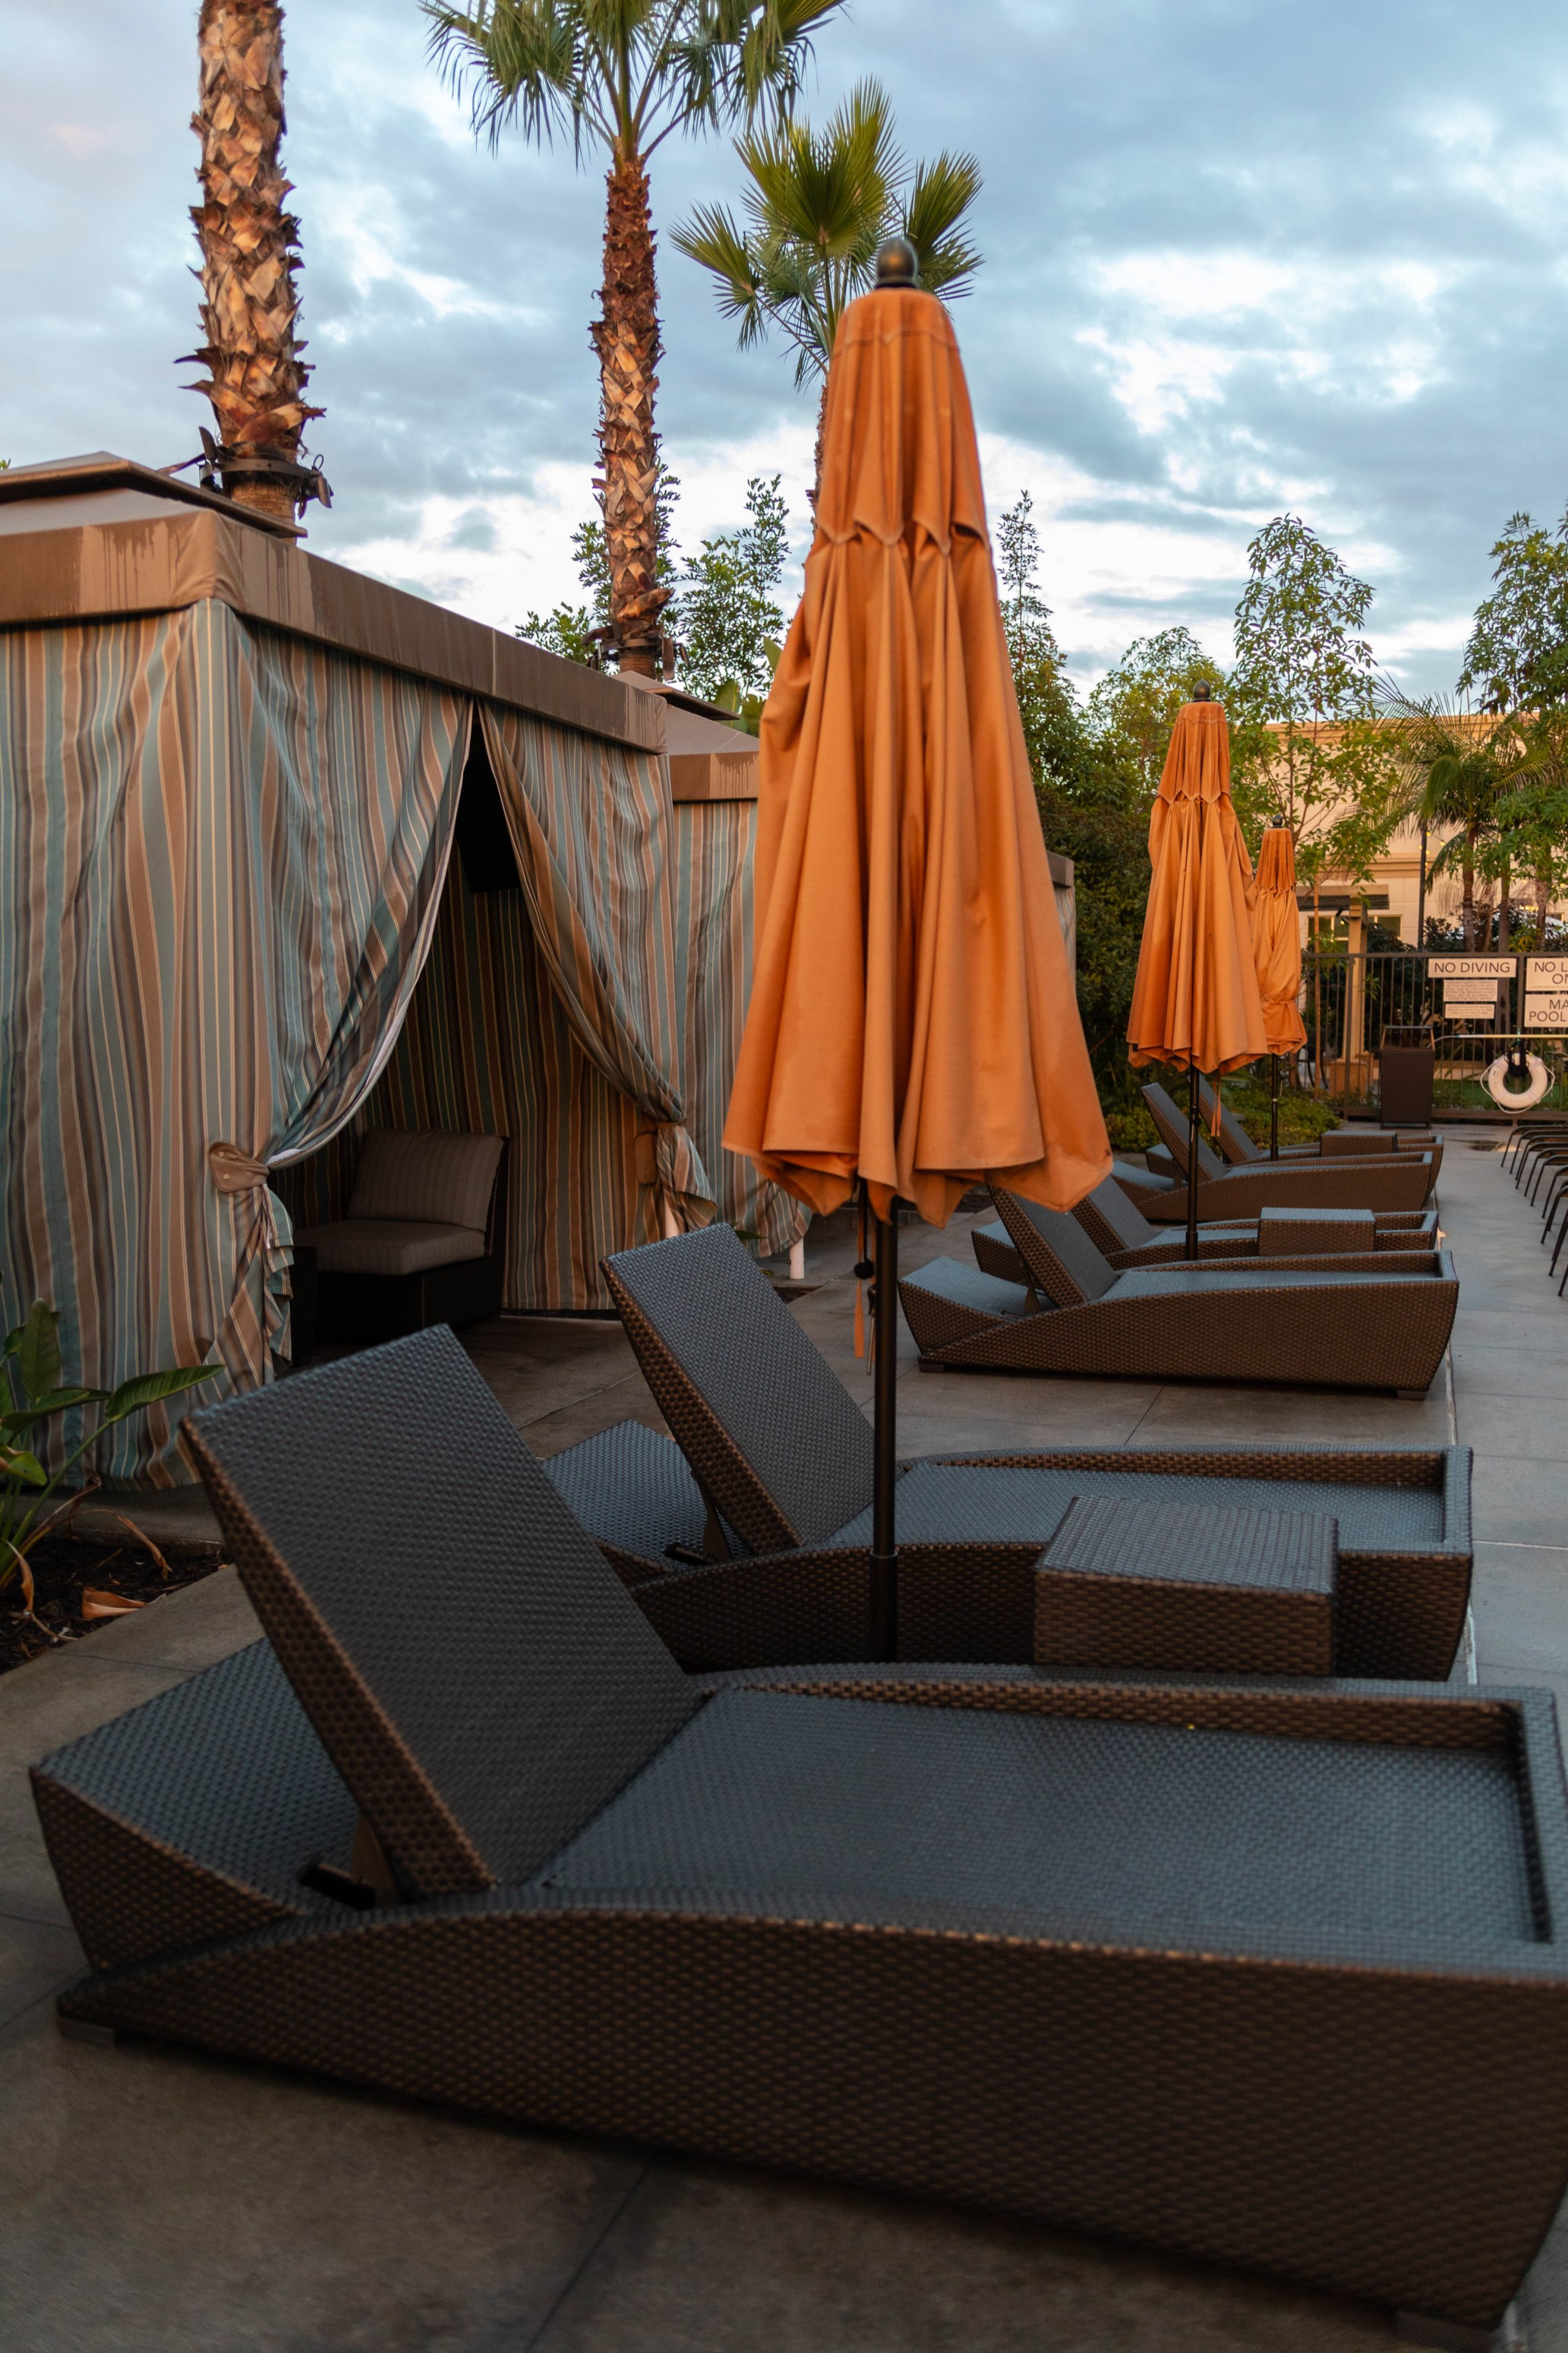 Luxury Hotels of the World: Irvine Spectrum Complete Review Rooftop Bar & Restaurant Irvine, California Pool